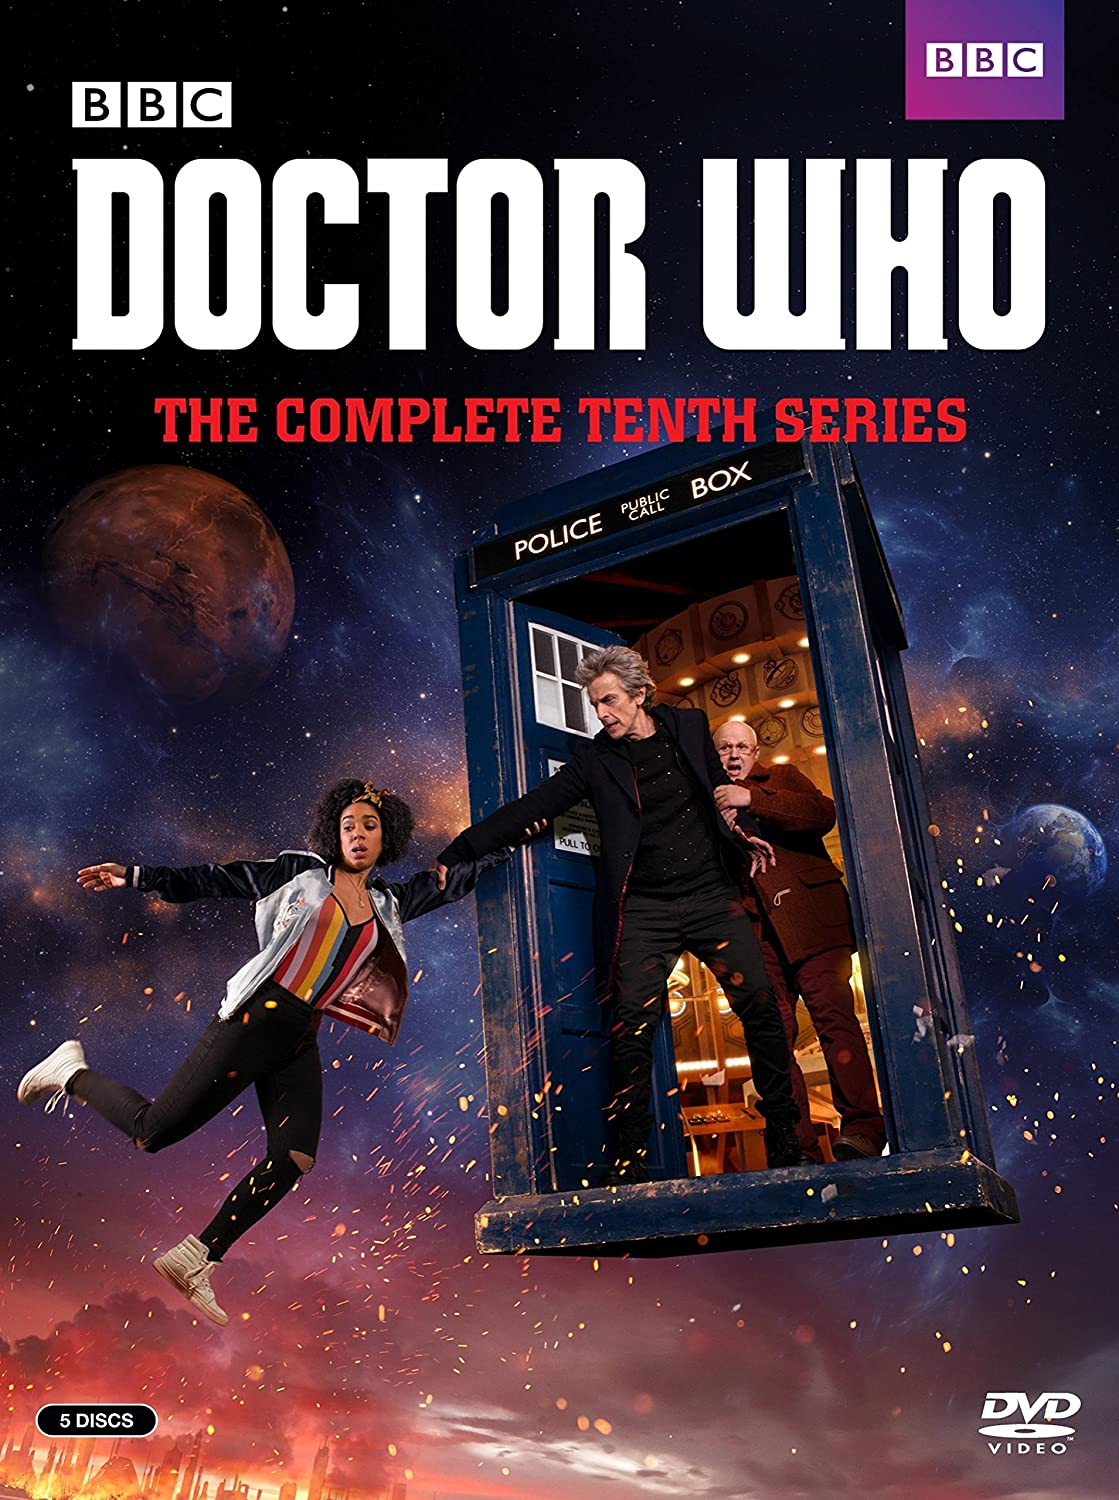 Amazon.com: Doctor Who: The Complete Tenth Series: Peter Capaldi ...